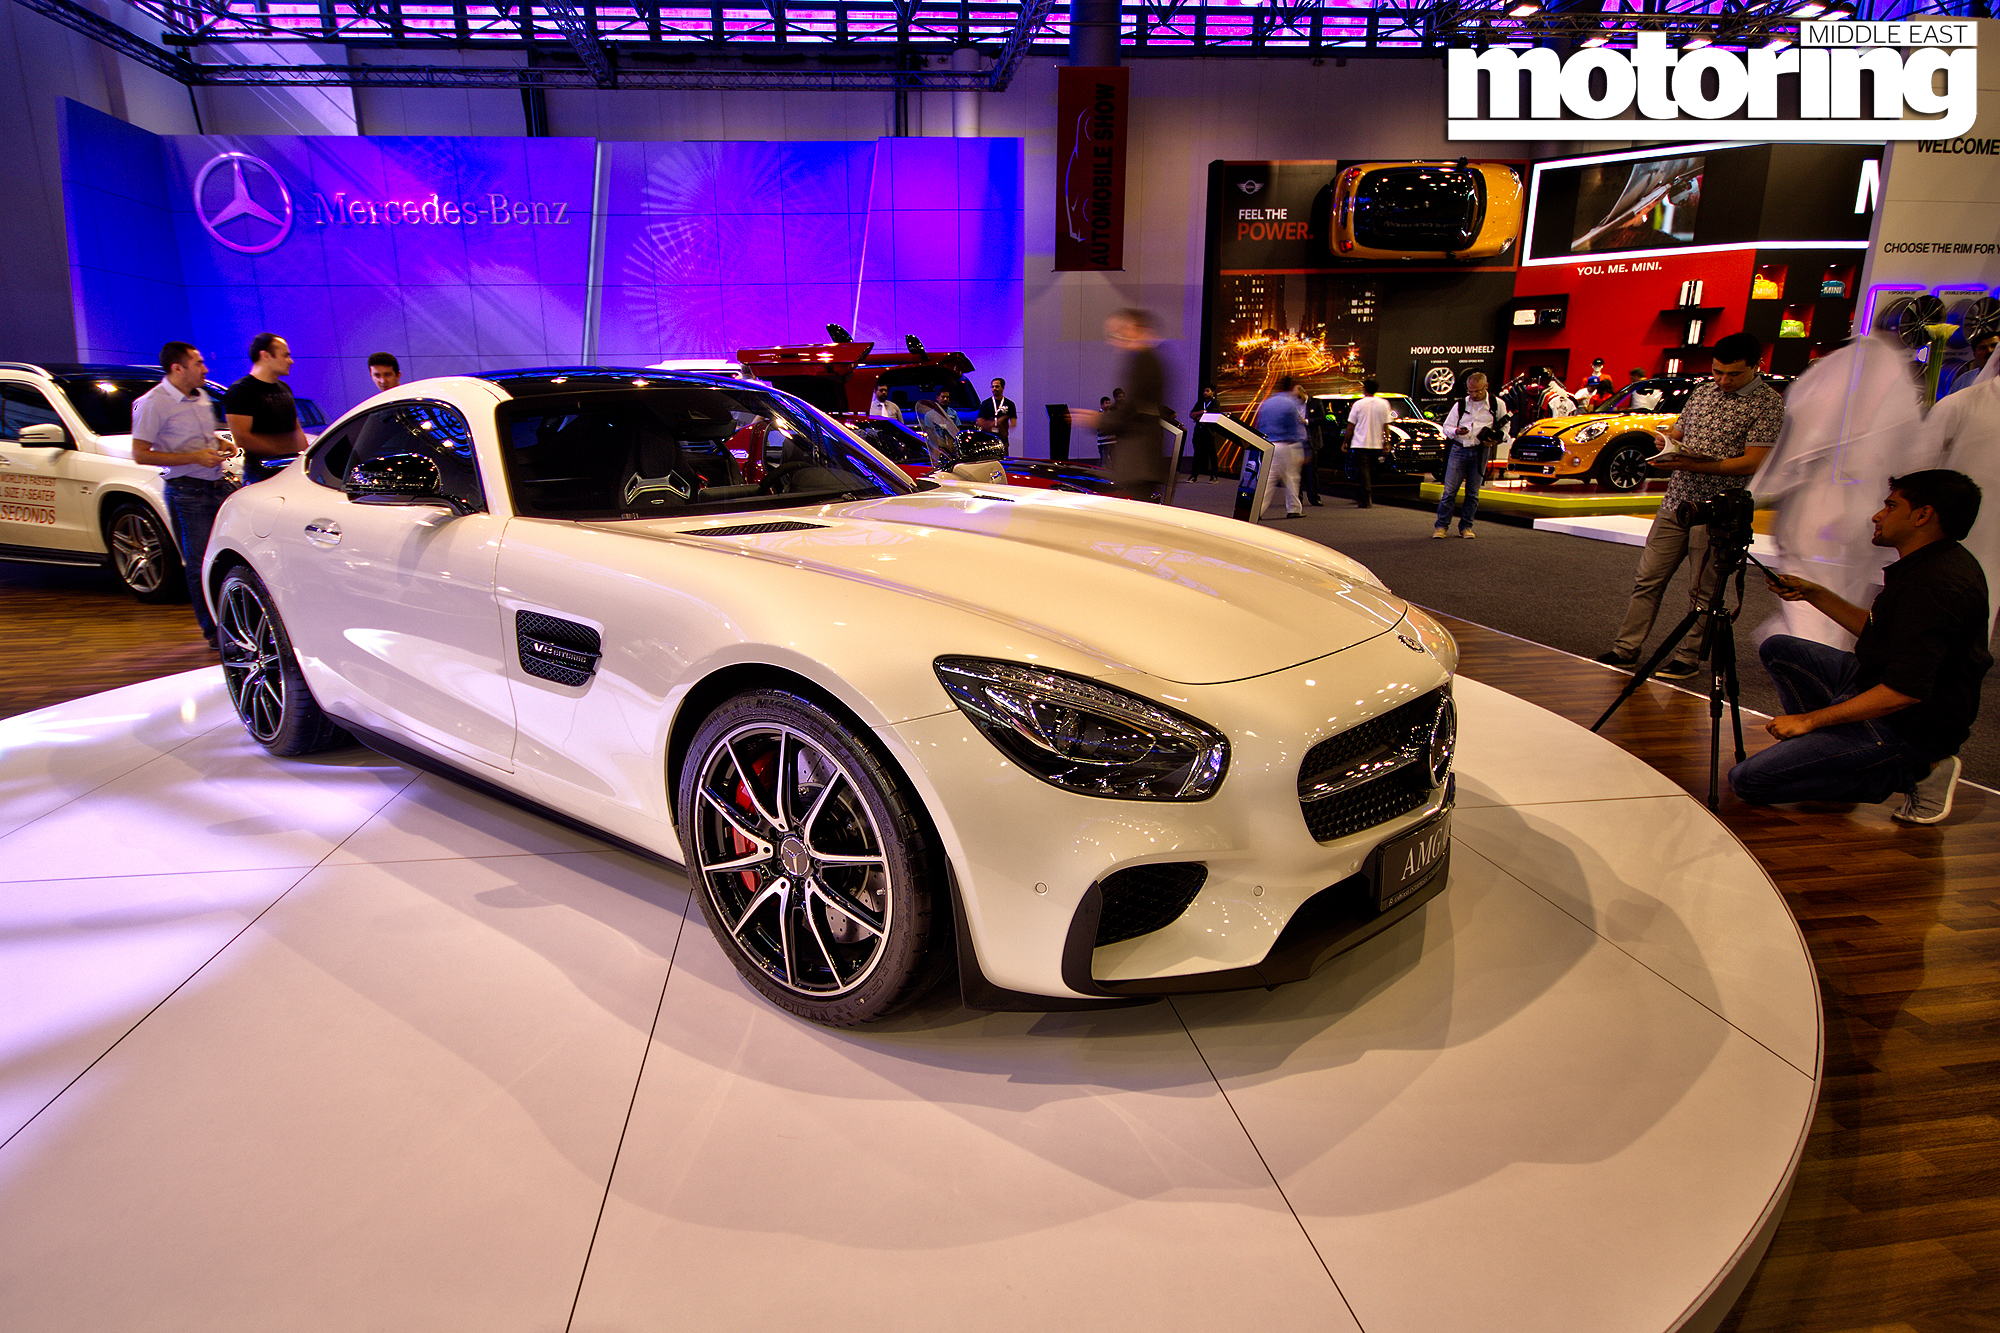 2014 Sharjah Motor Show - ReportMotoring Middle East: Car